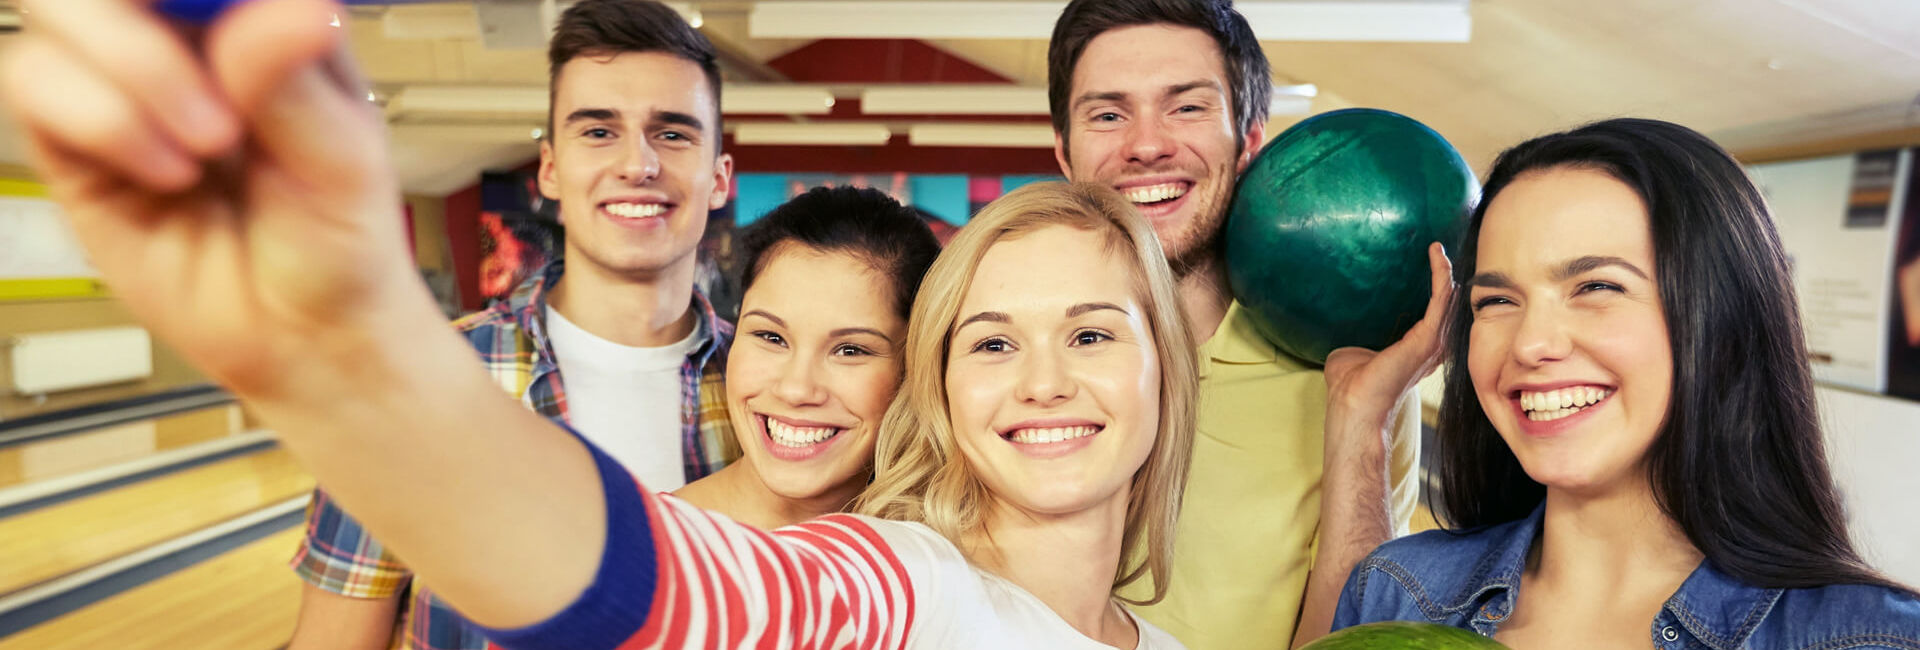 Friends making a selfie at the bowling lanes